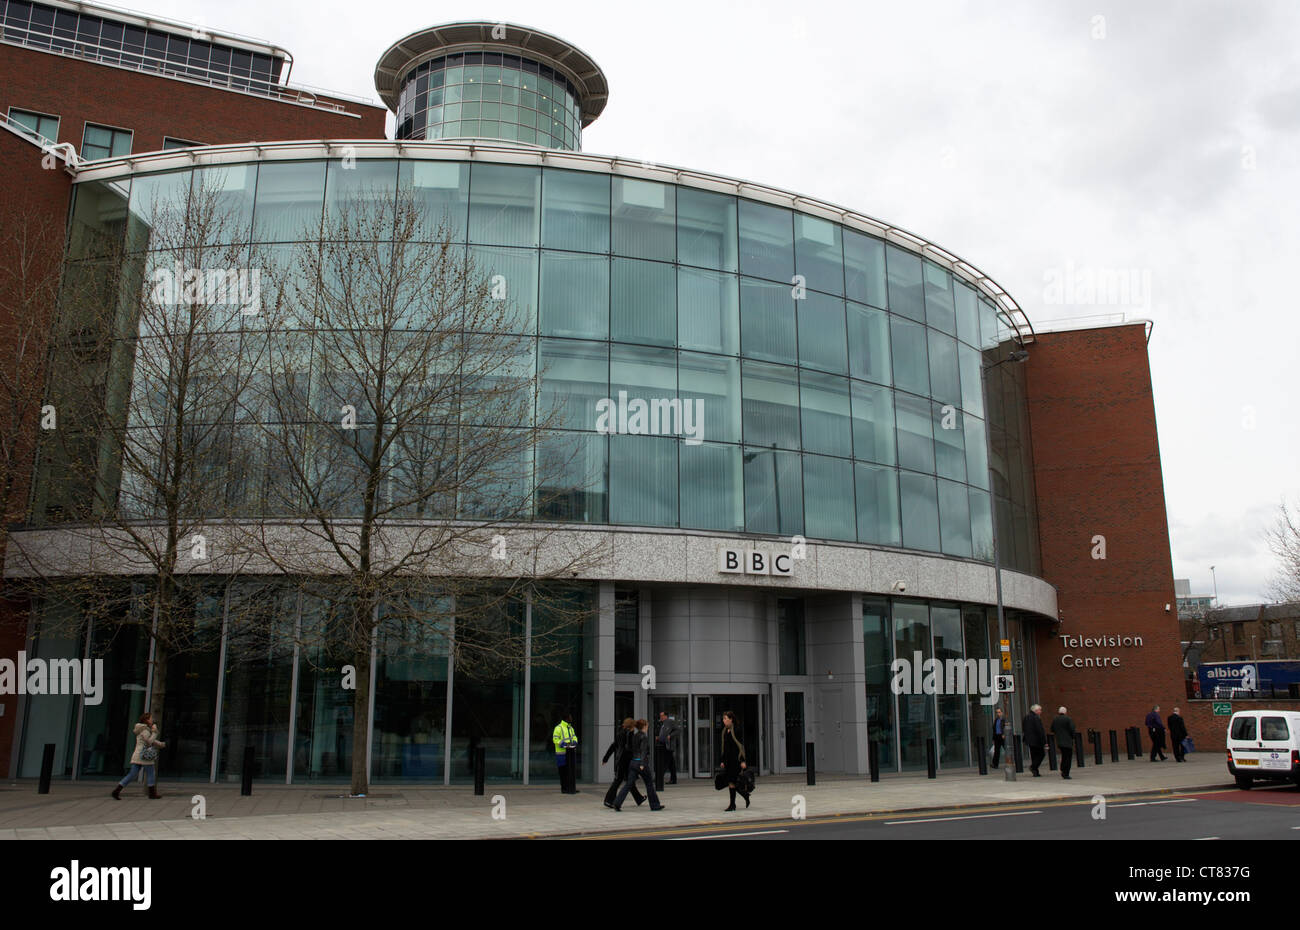 bbc television building london stock photos & bbc television